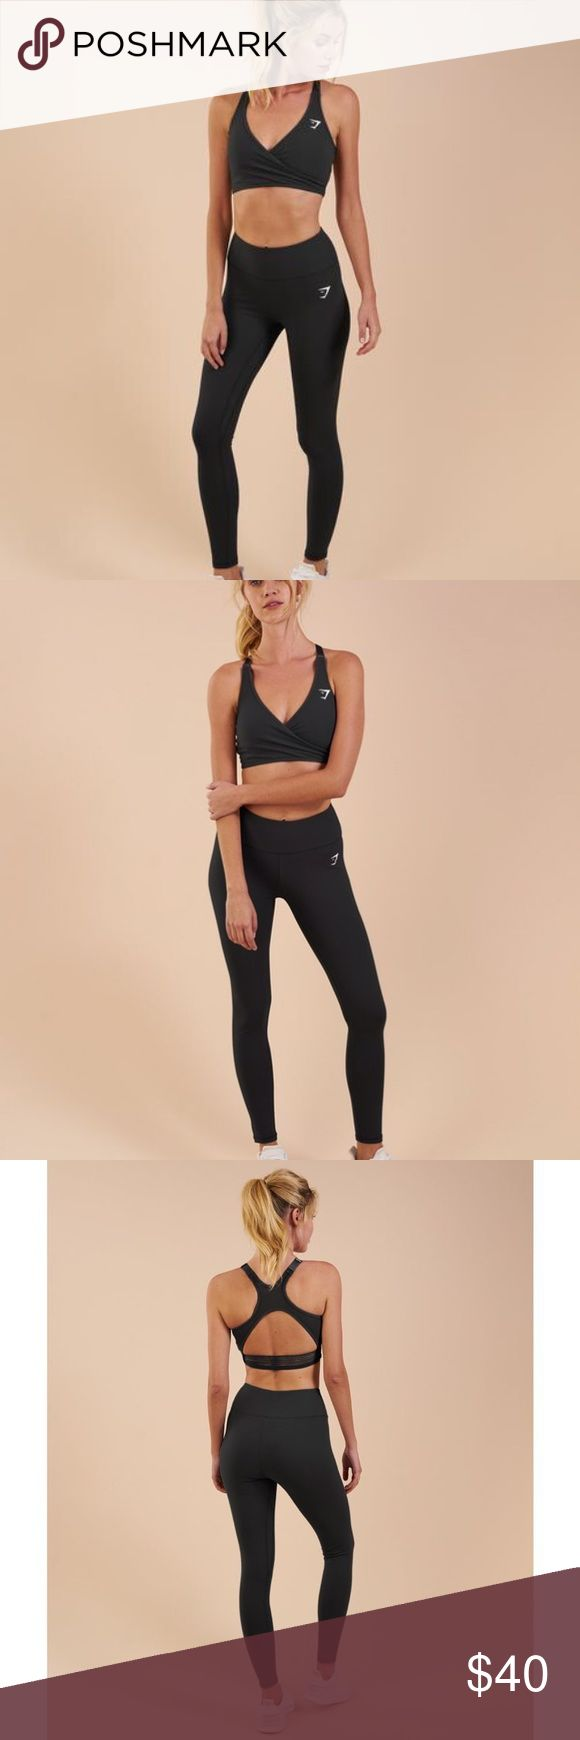 Gymshark Dreamy Legging Gymshark Dreamy legging in the color black size small. Brand new! These pants are so ridiculously comfortable, there is a reason why they are called Dreamy! Unfortunately they are a little bit too big on me. Gymshark Pants Leggings